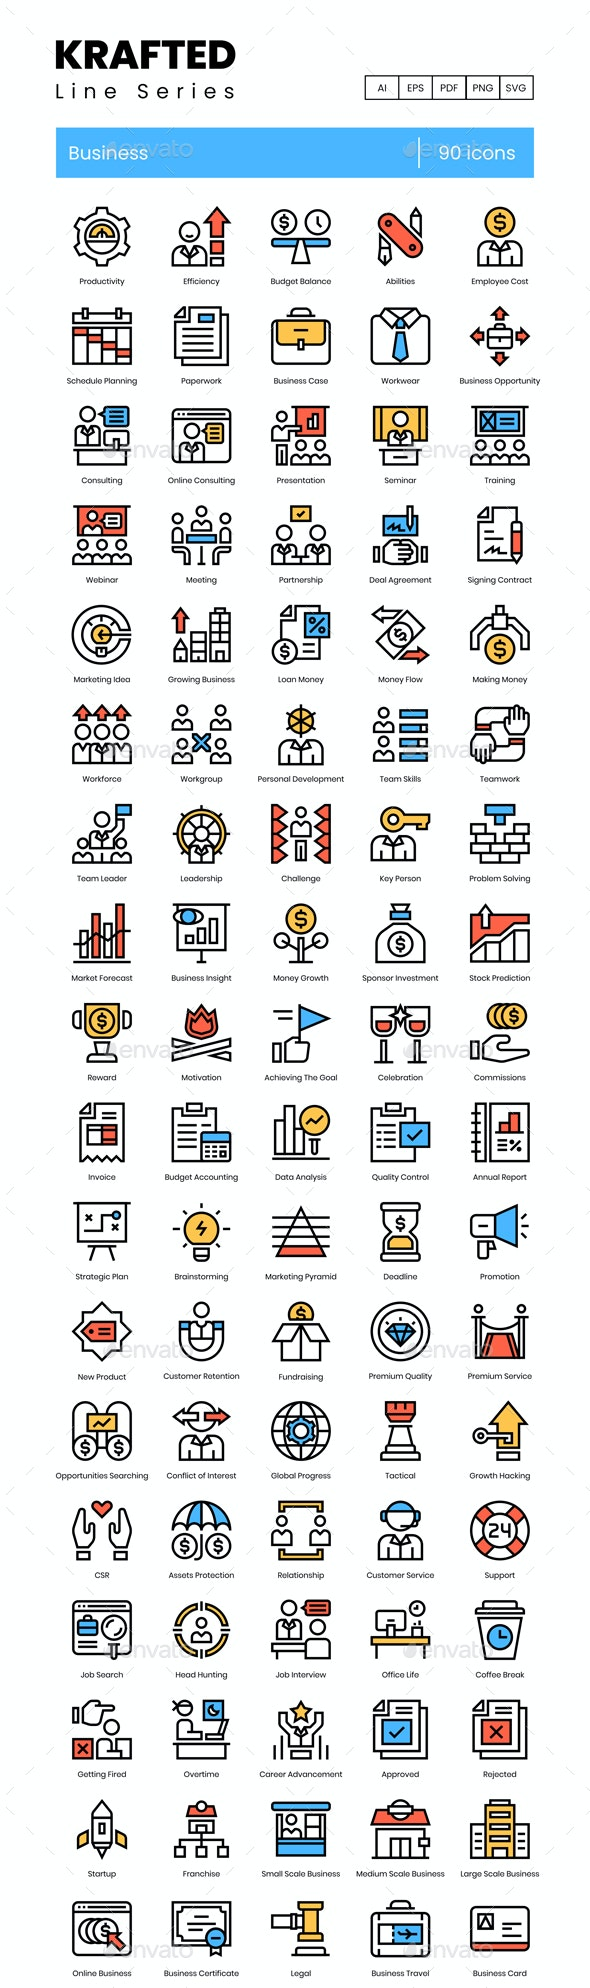 Business Icons - Krafted - Business Icons